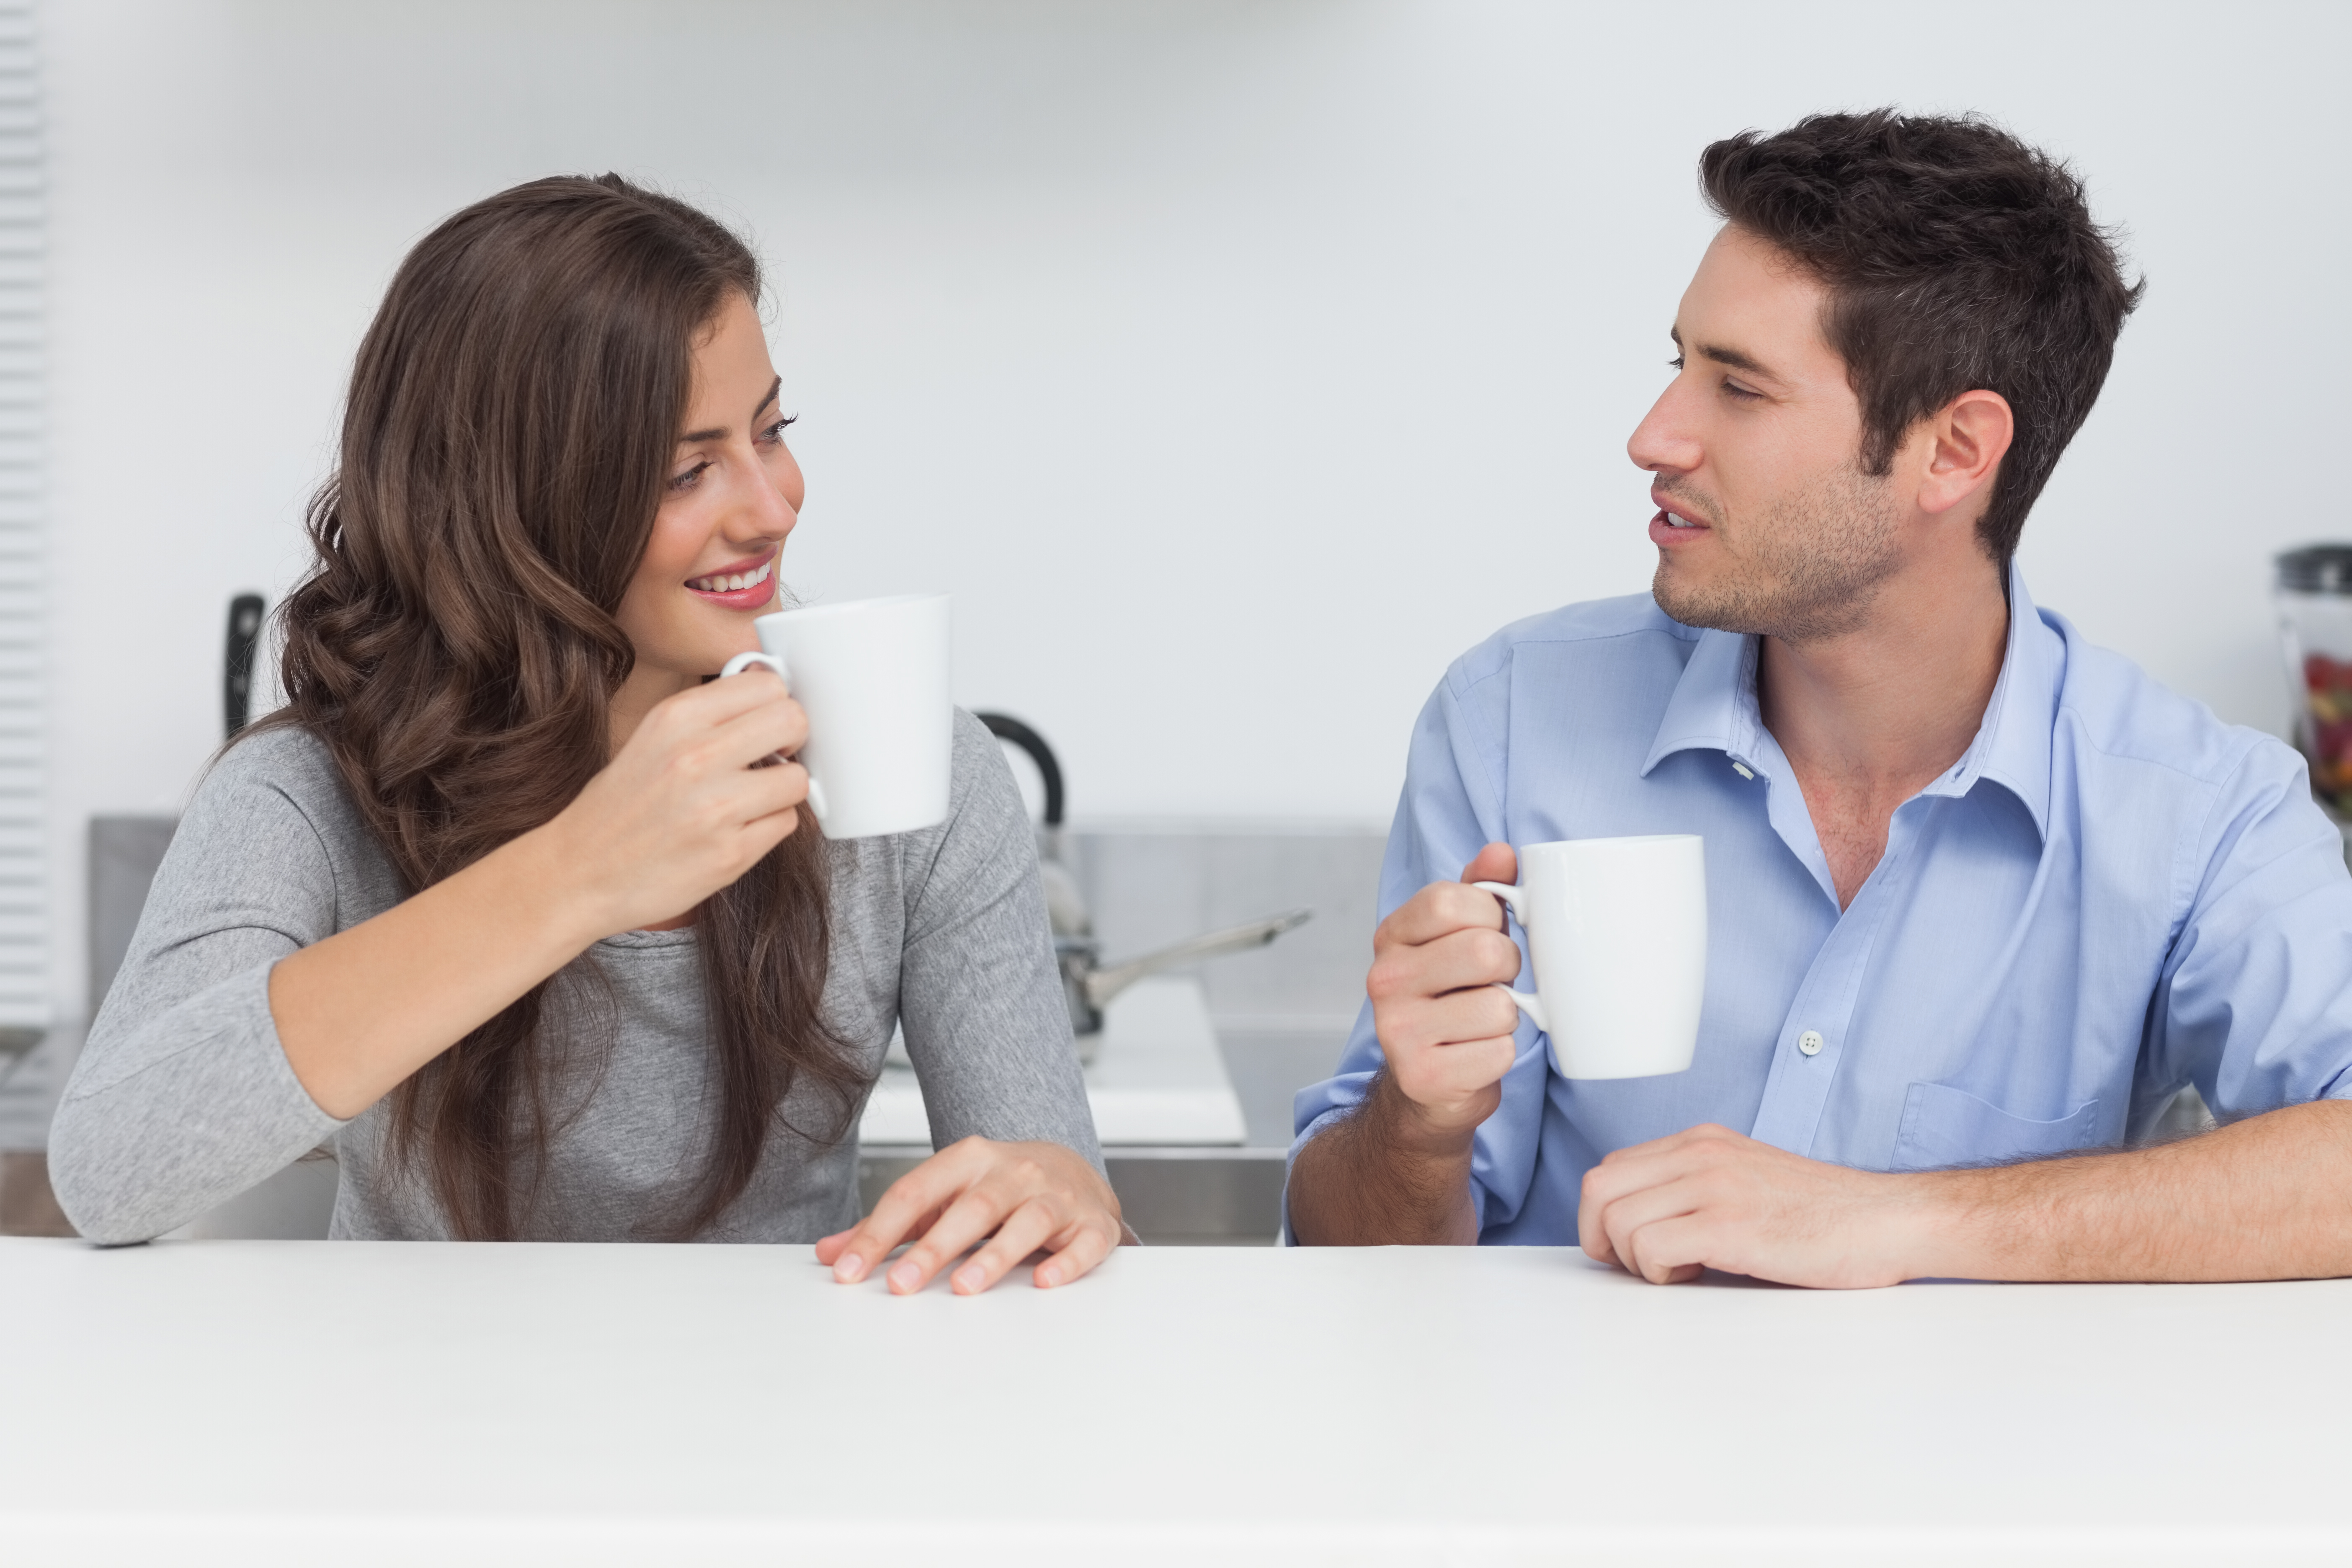 Couple drinking cups of coffee together in the kitchen